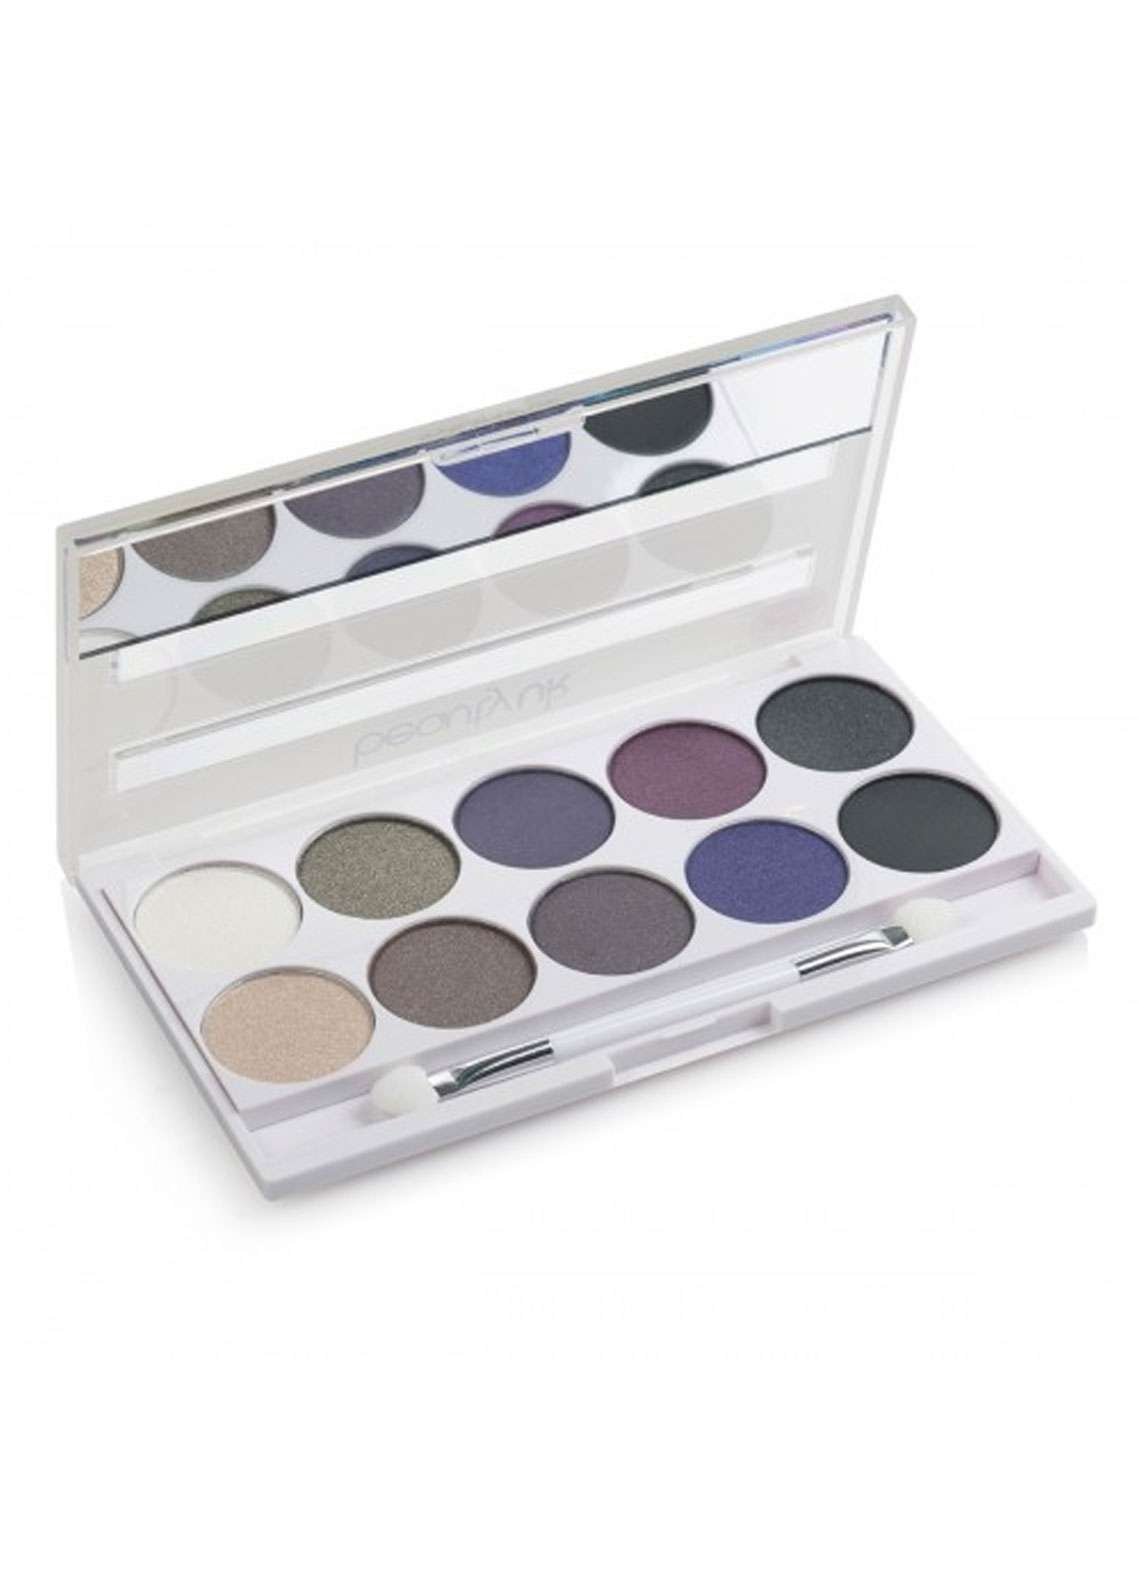 Beauty UK Posh Eye Shadow Palette - 4 Galaxy